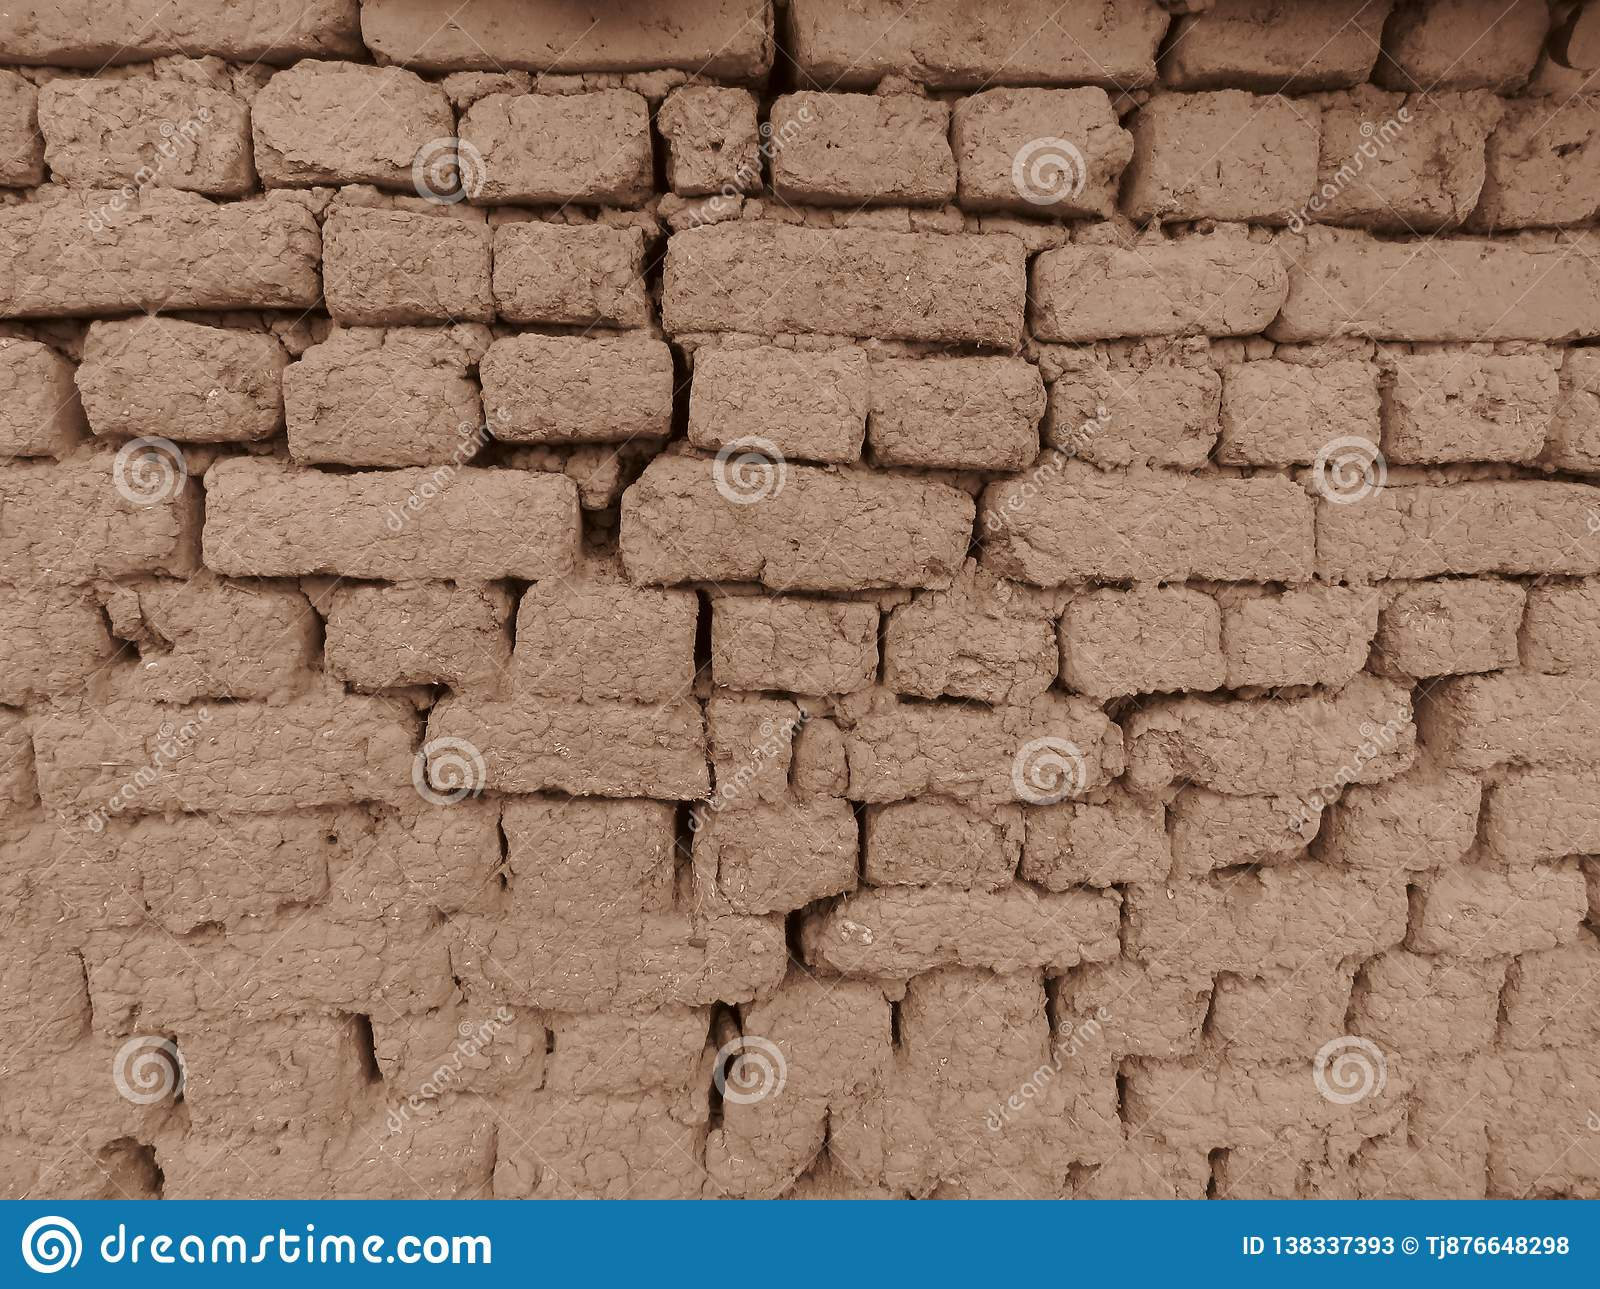 Old clay brickworks in Sepia colour. Wall clay bricks and cracks suitable for rustic retro style background.